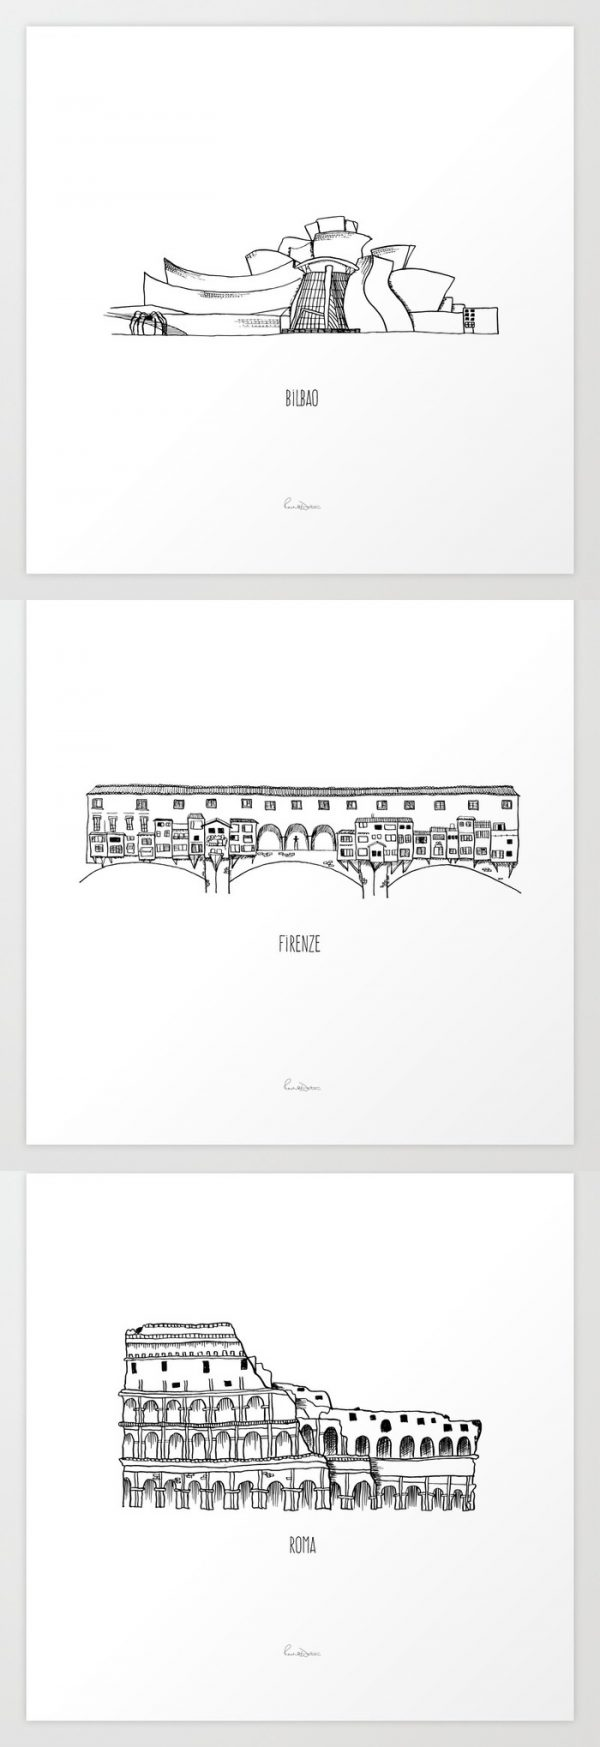 40 Beautiful Architectural Prints Posters For People Who Love